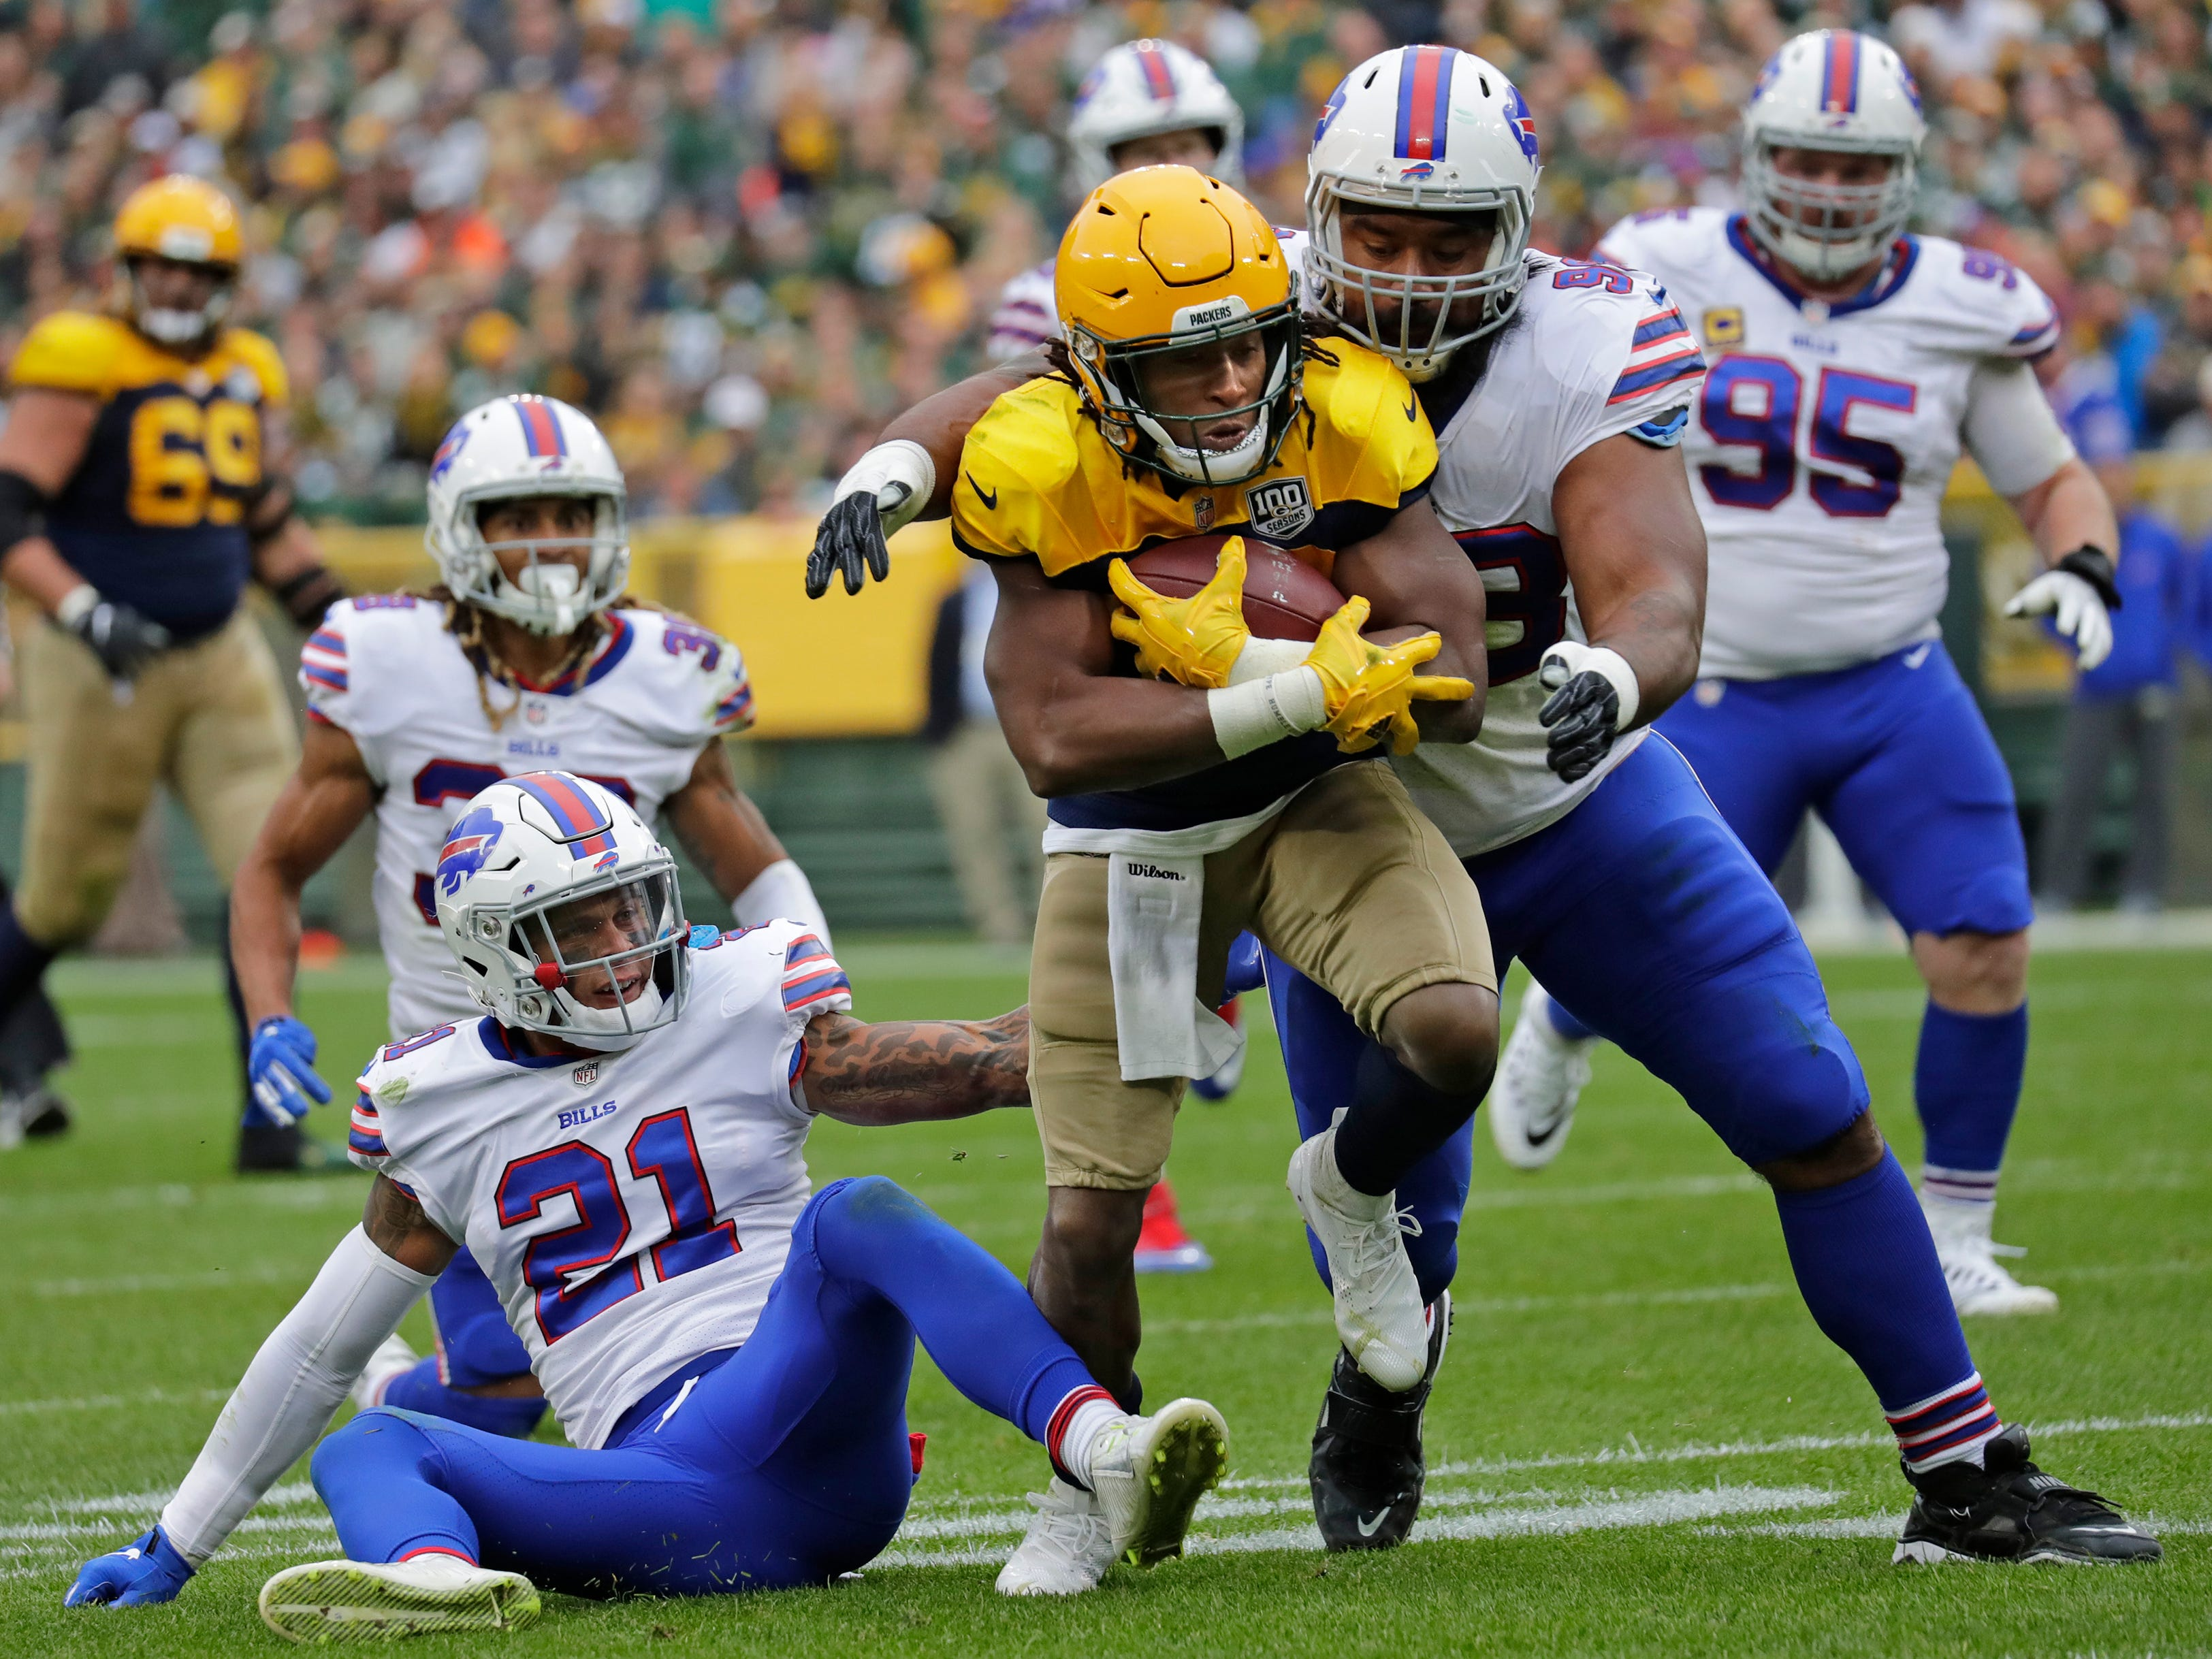 Green Bay Packers running back Aaron Jones (33) runs for a long first down against Buffalo Bills defensive back Jordan Poyer (21) and defensive tackle Star Lotulelei (98) in the second quarter during their football game Sunday, Sept. 30, 2018, at Lambeau Field in Green Bay, Wis. 